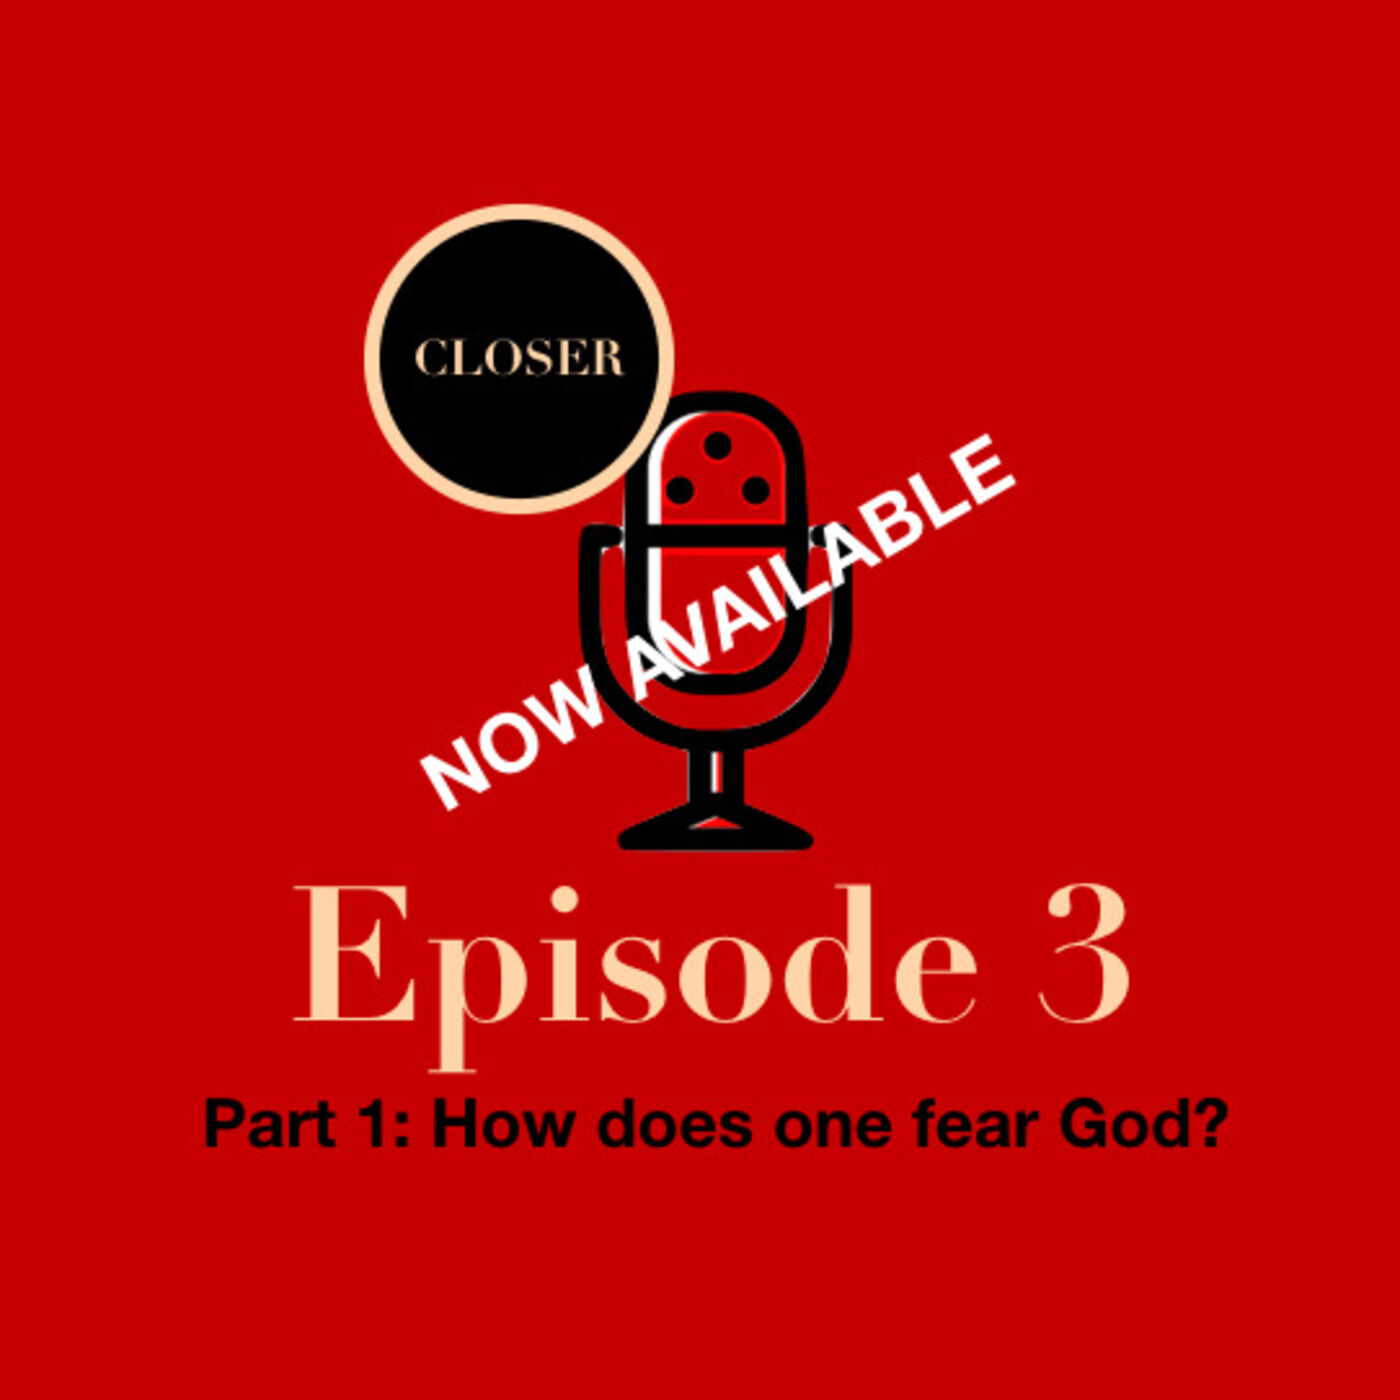 EP 3: Part 1 How Does One Fear God?